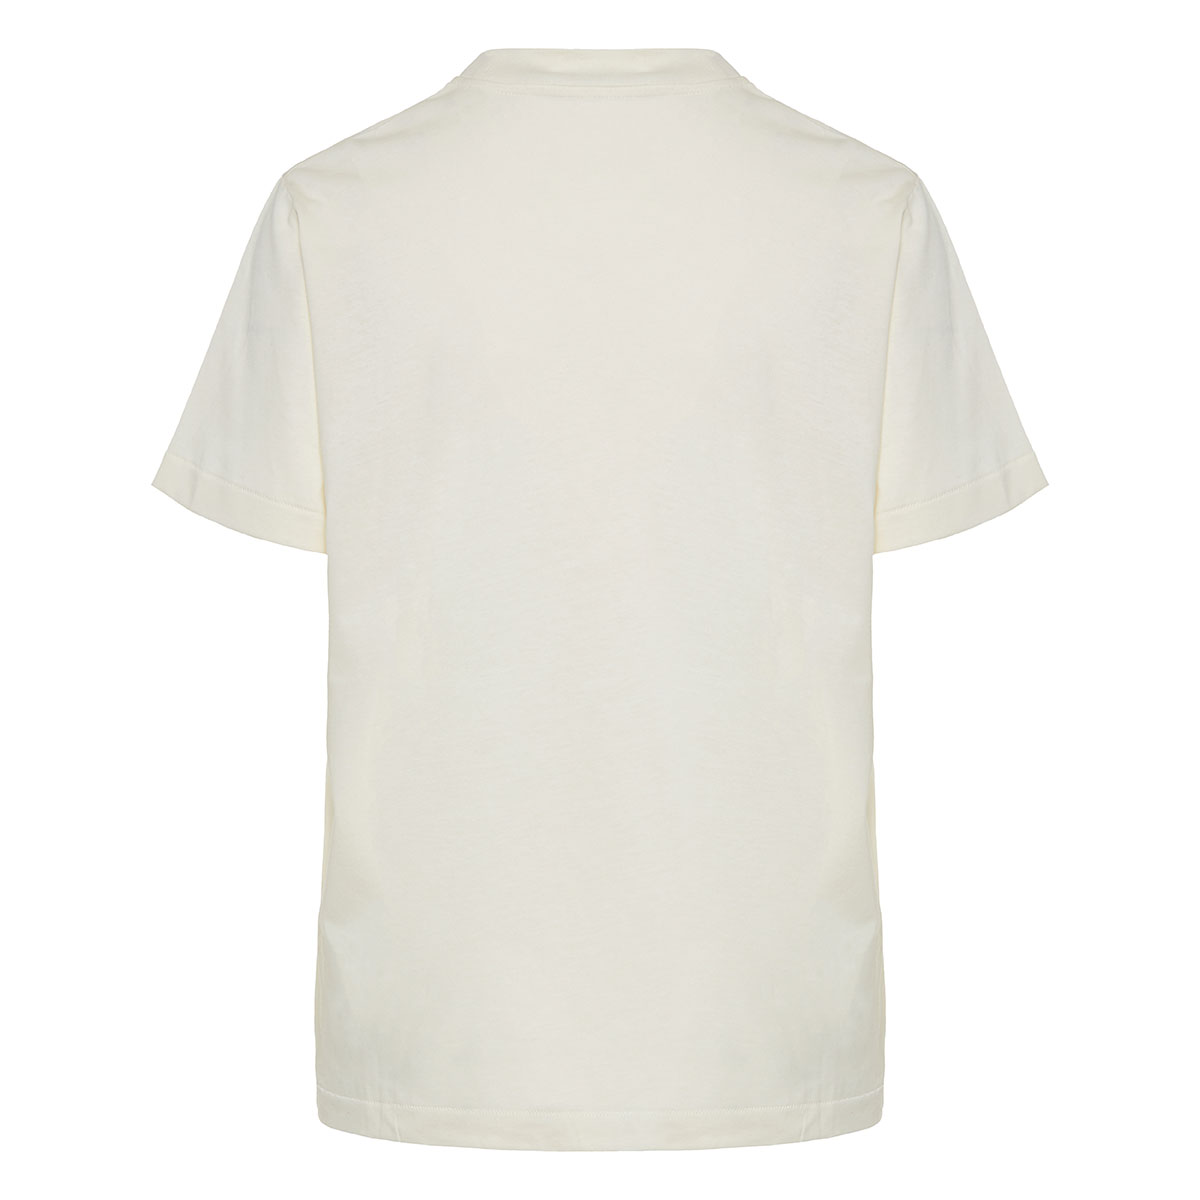 Gucci Tennis oversized t-shirt